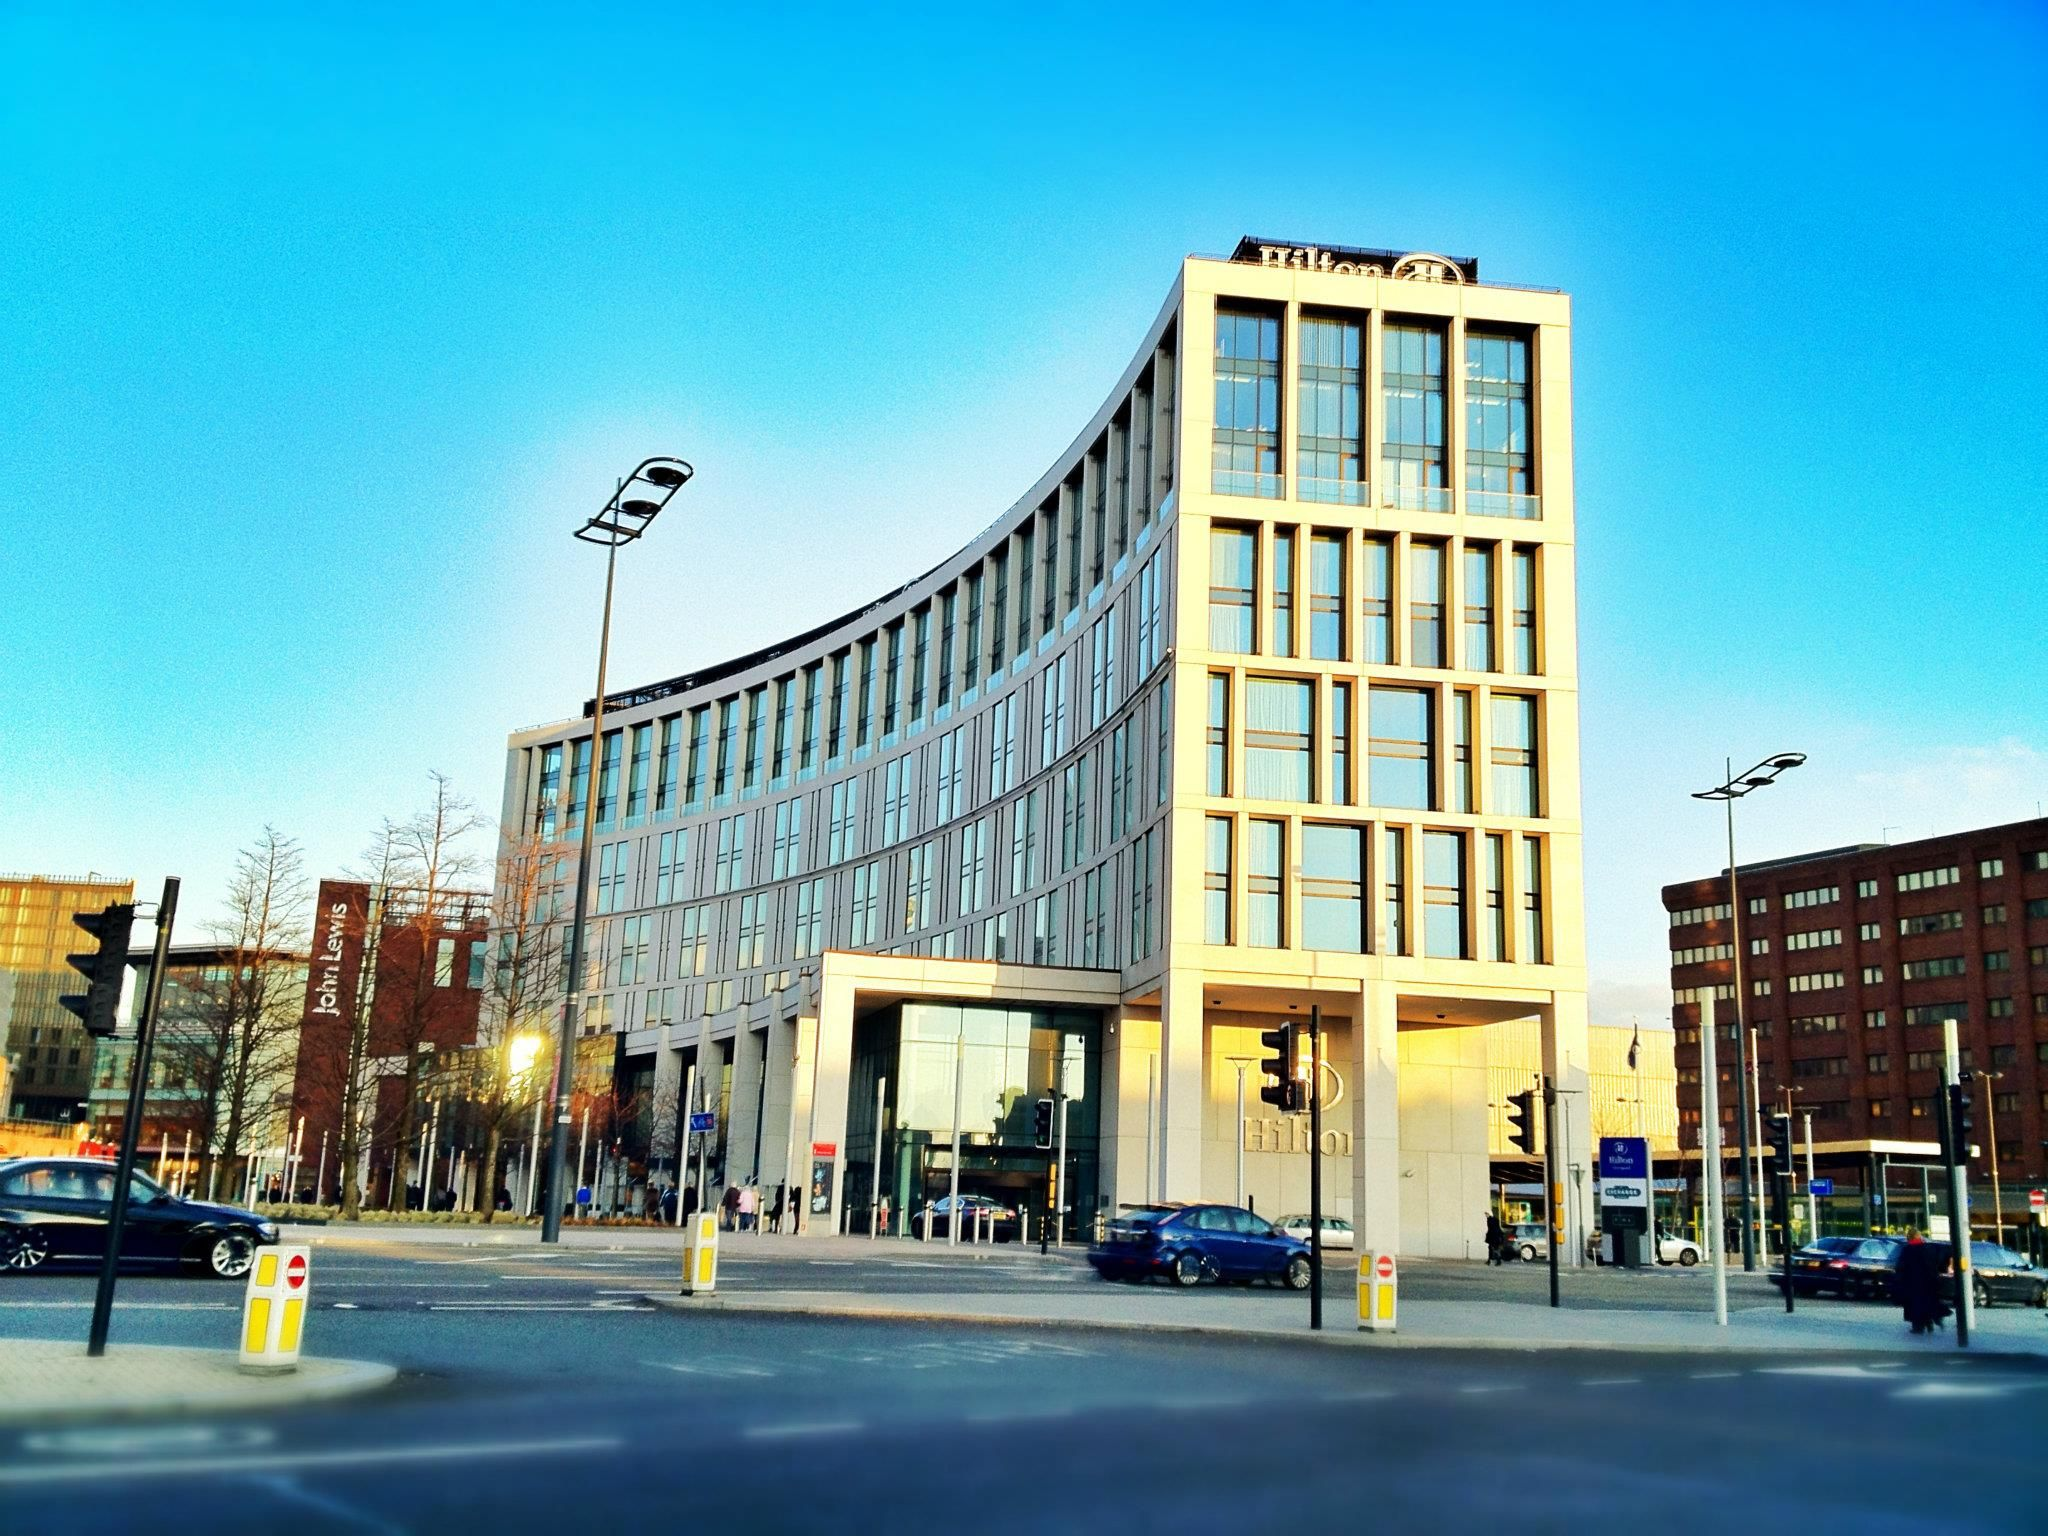 Liverpool The Hilton Hotel By Danny Gauden